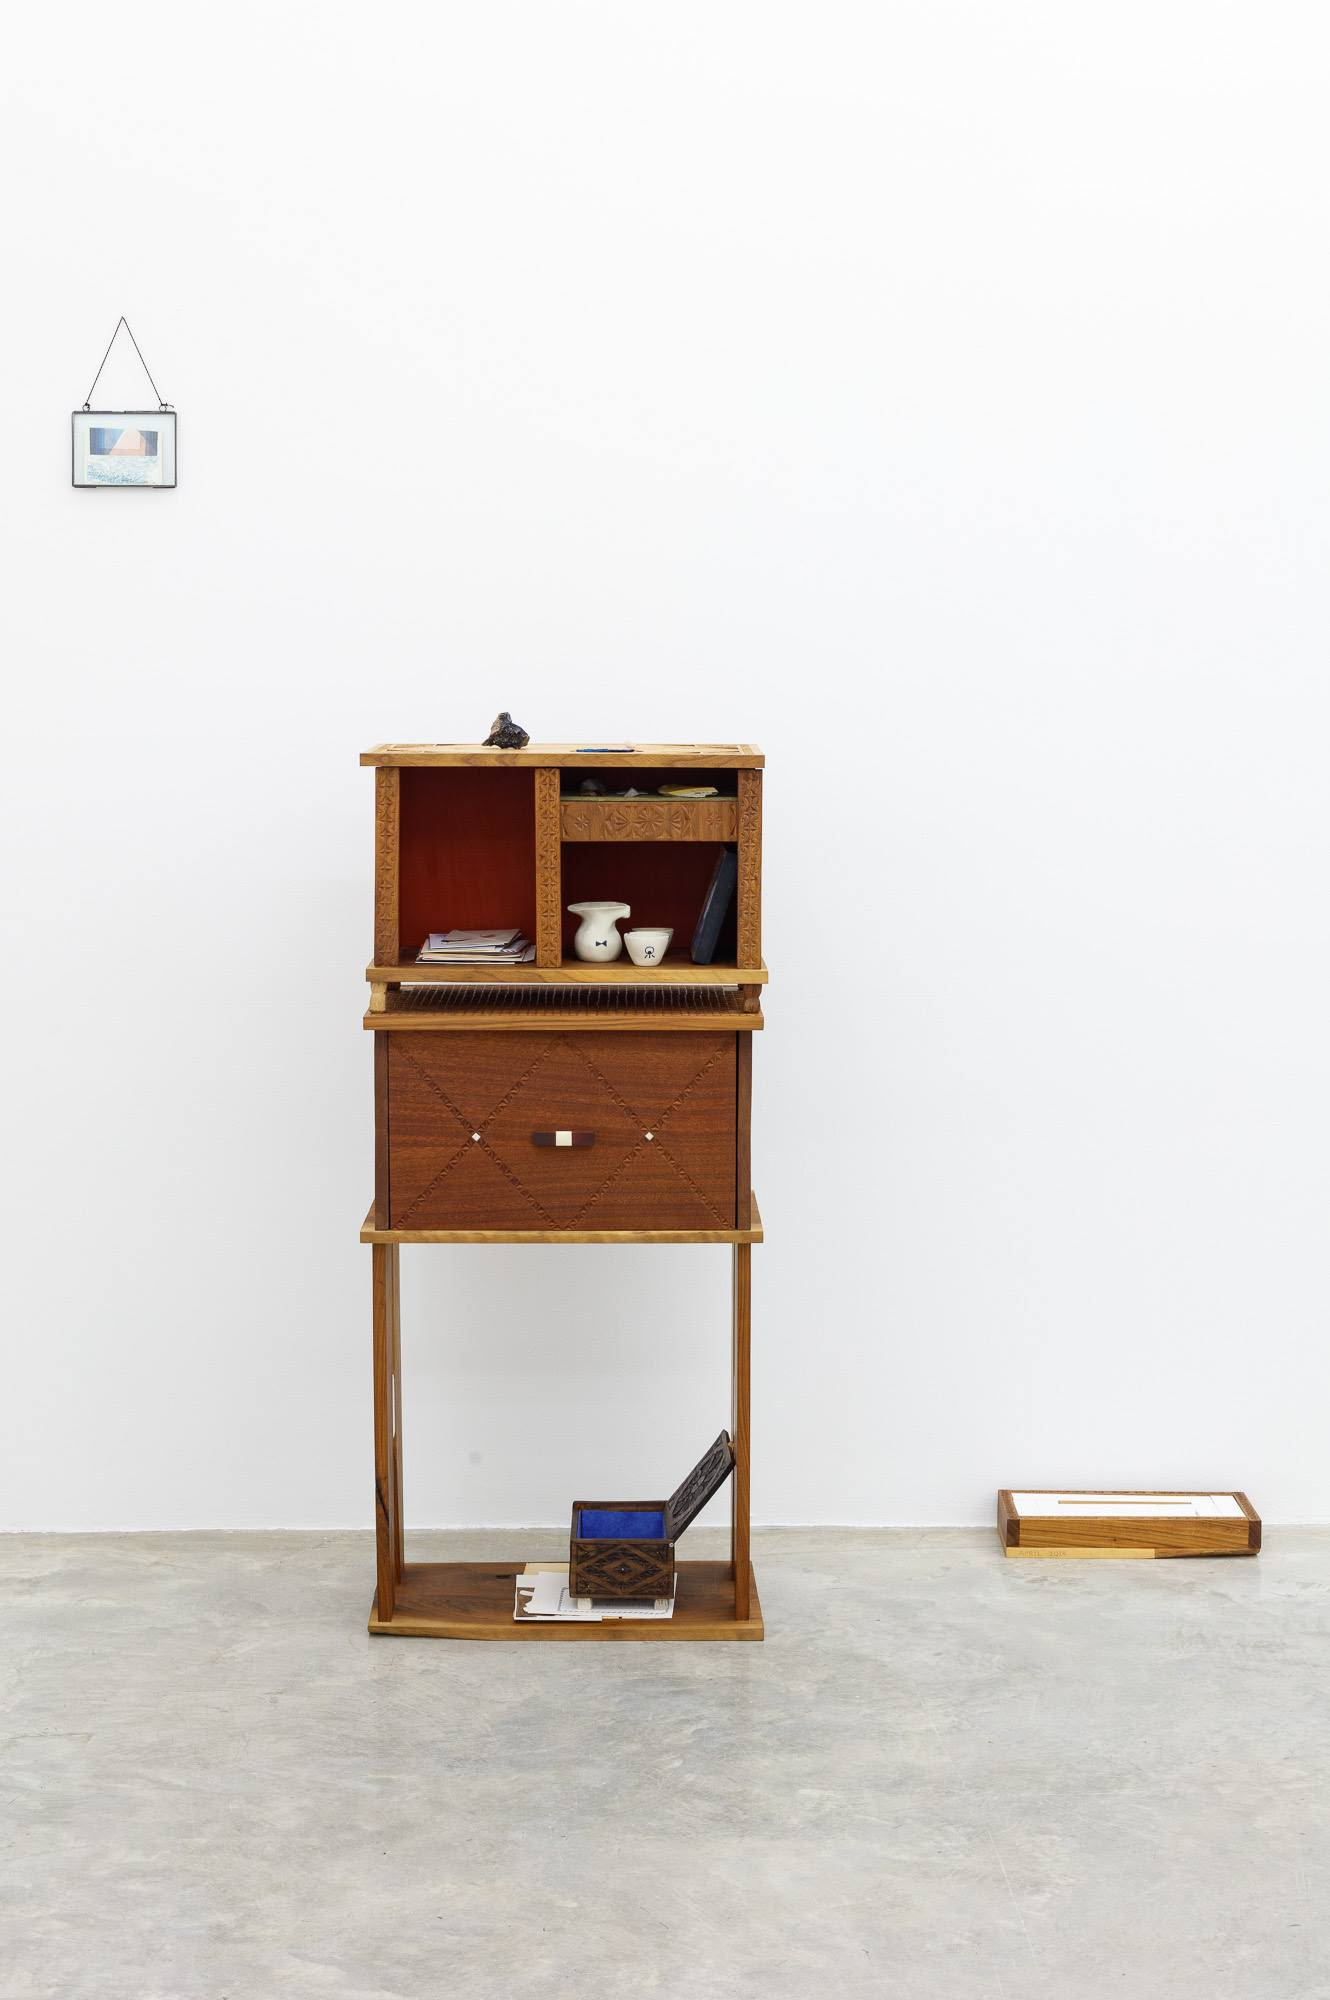 Patricia Fernández, Box (a proposition for ten years)